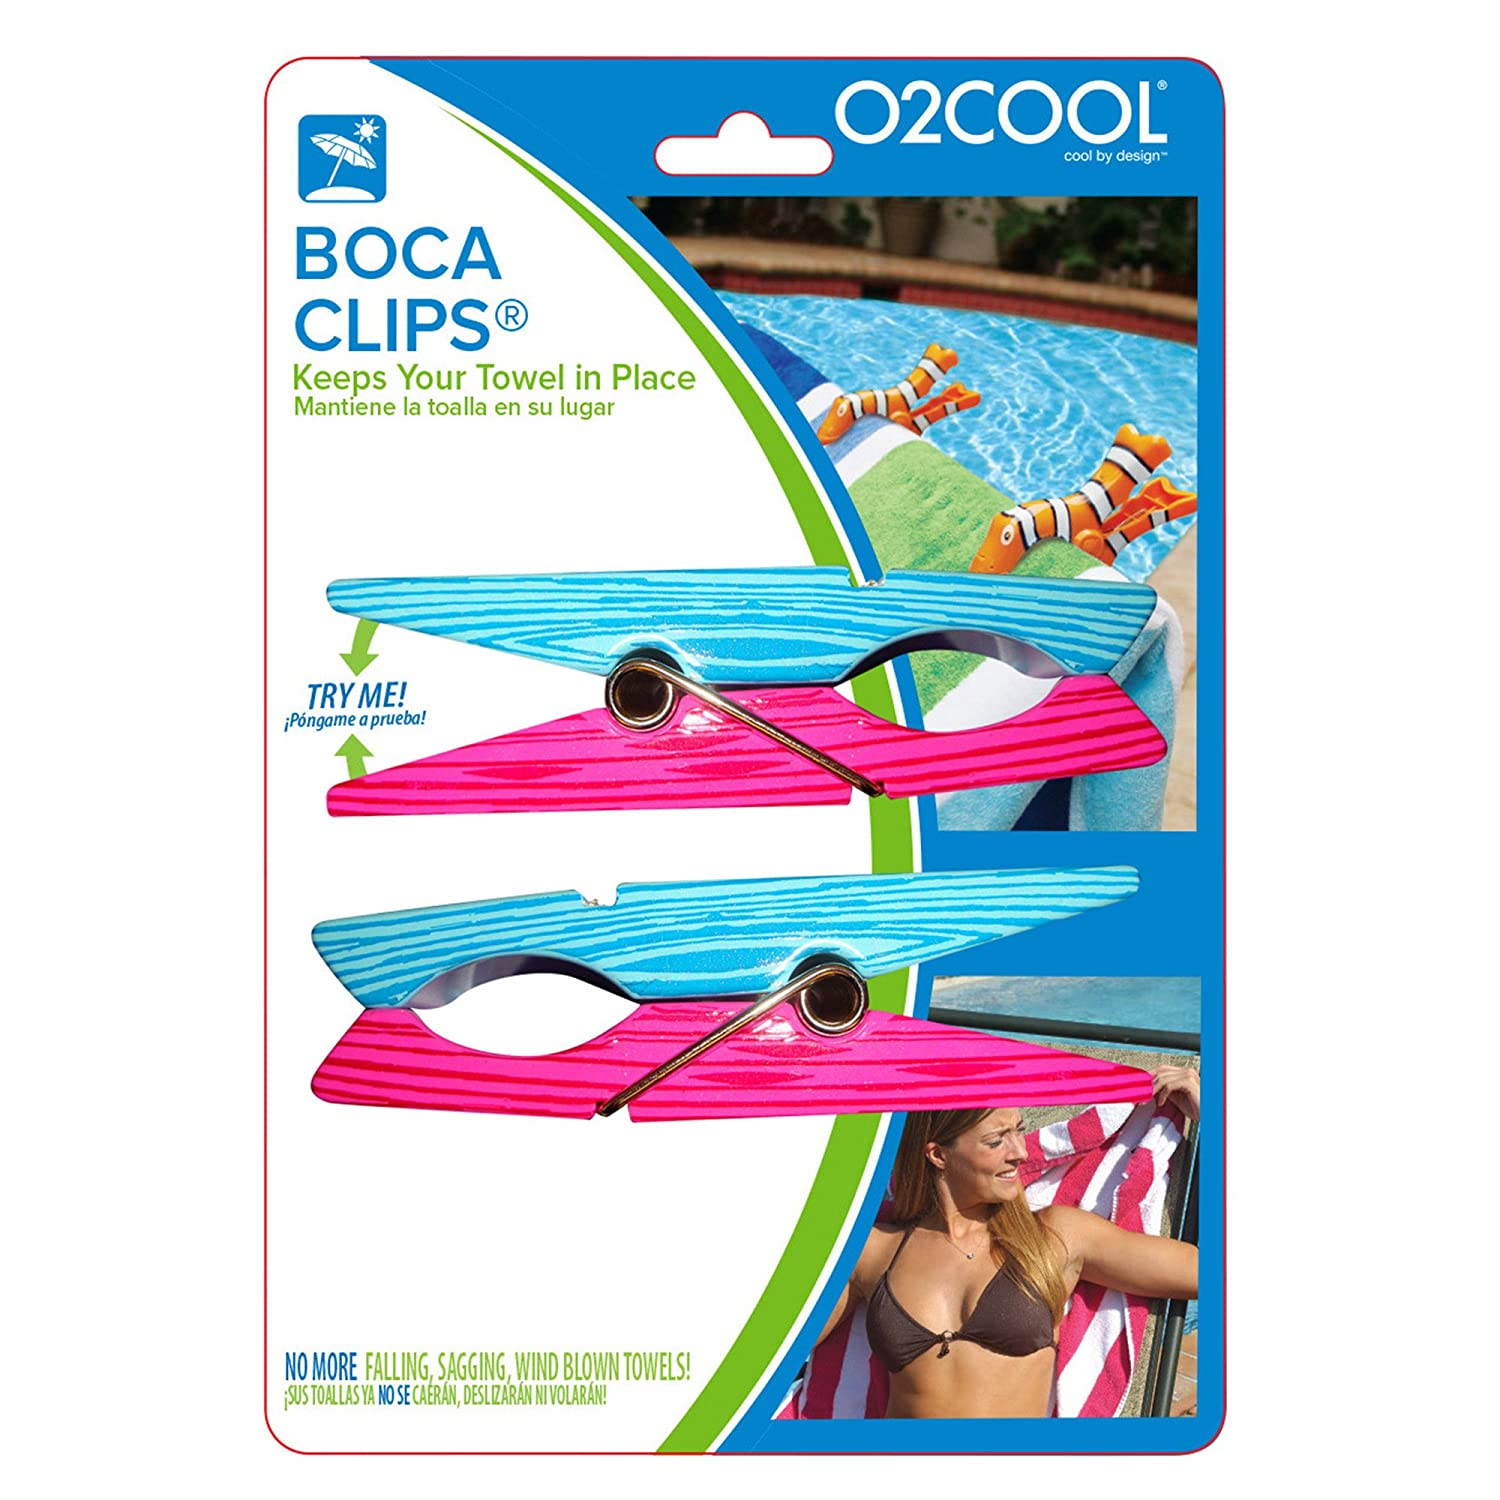 Amazon.com: Clothes Pin BocaClips by O2COOL, Beach Towel Holders, Clips, Set of two, Beach, Patio or Pool Accessories, Portable Towel Clips, Chip Clips, ...